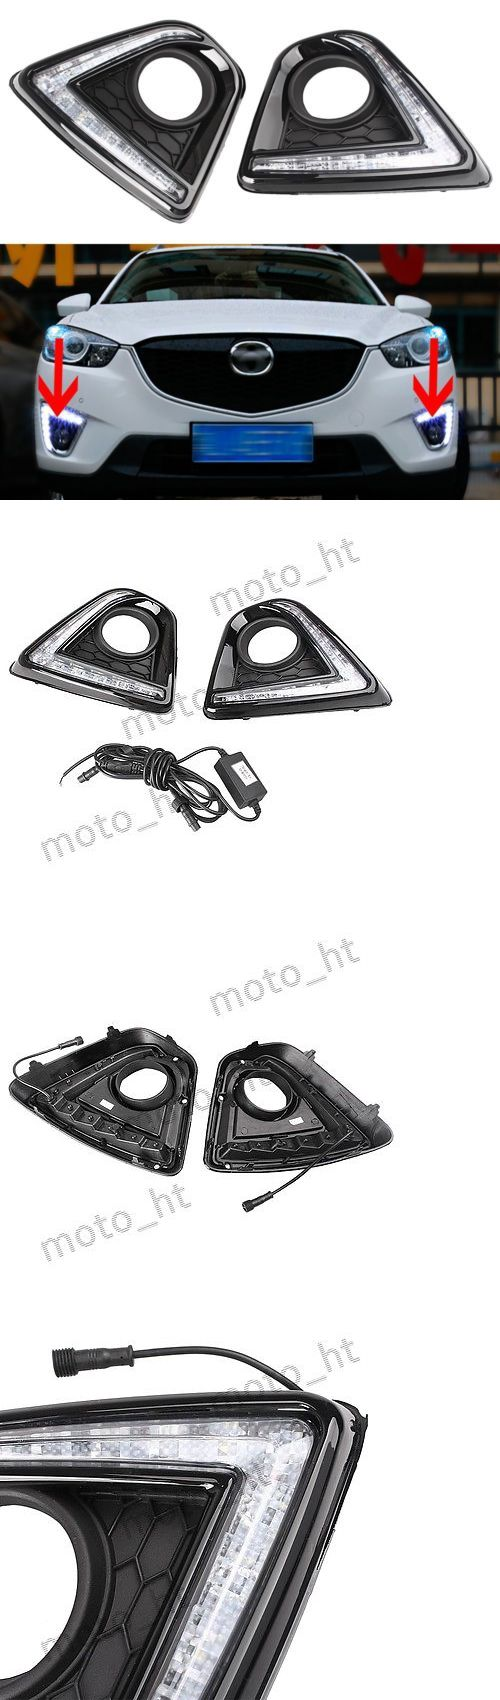 Motors Parts And Accessories: 2Pcs Led Daytime Running Fog Lamp Drl Day Light Fit Mazda Cx-5 2012-2015 -> BUY IT NOW ONLY: $56.46 on eBay!